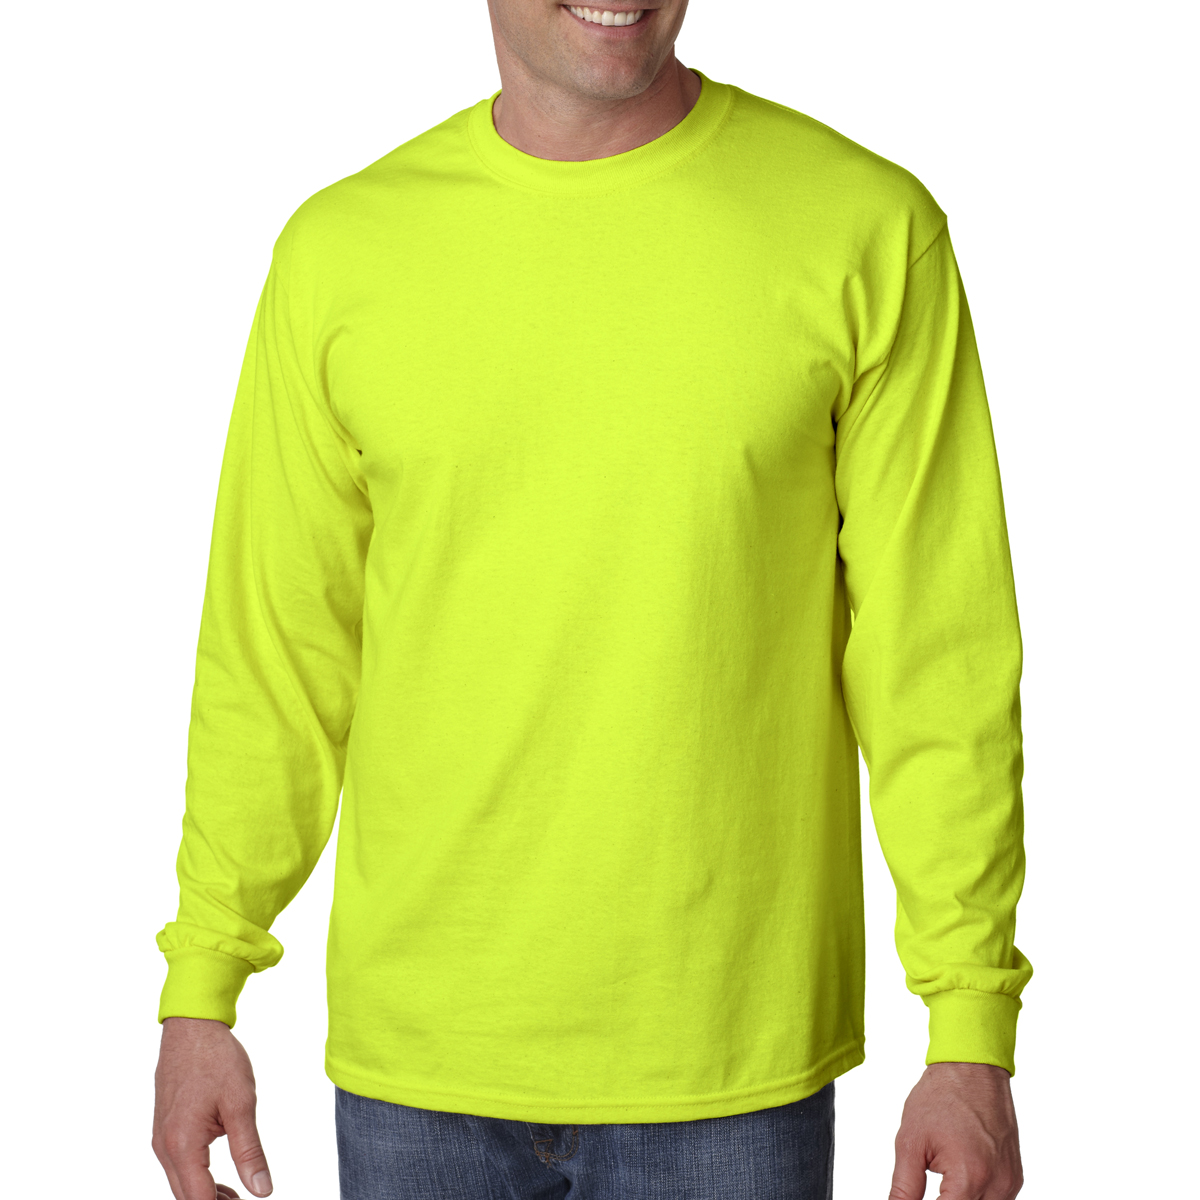 889d35d2234bc Orange · Gildan G2400 safety green colored t-shirts. Safety Green ...